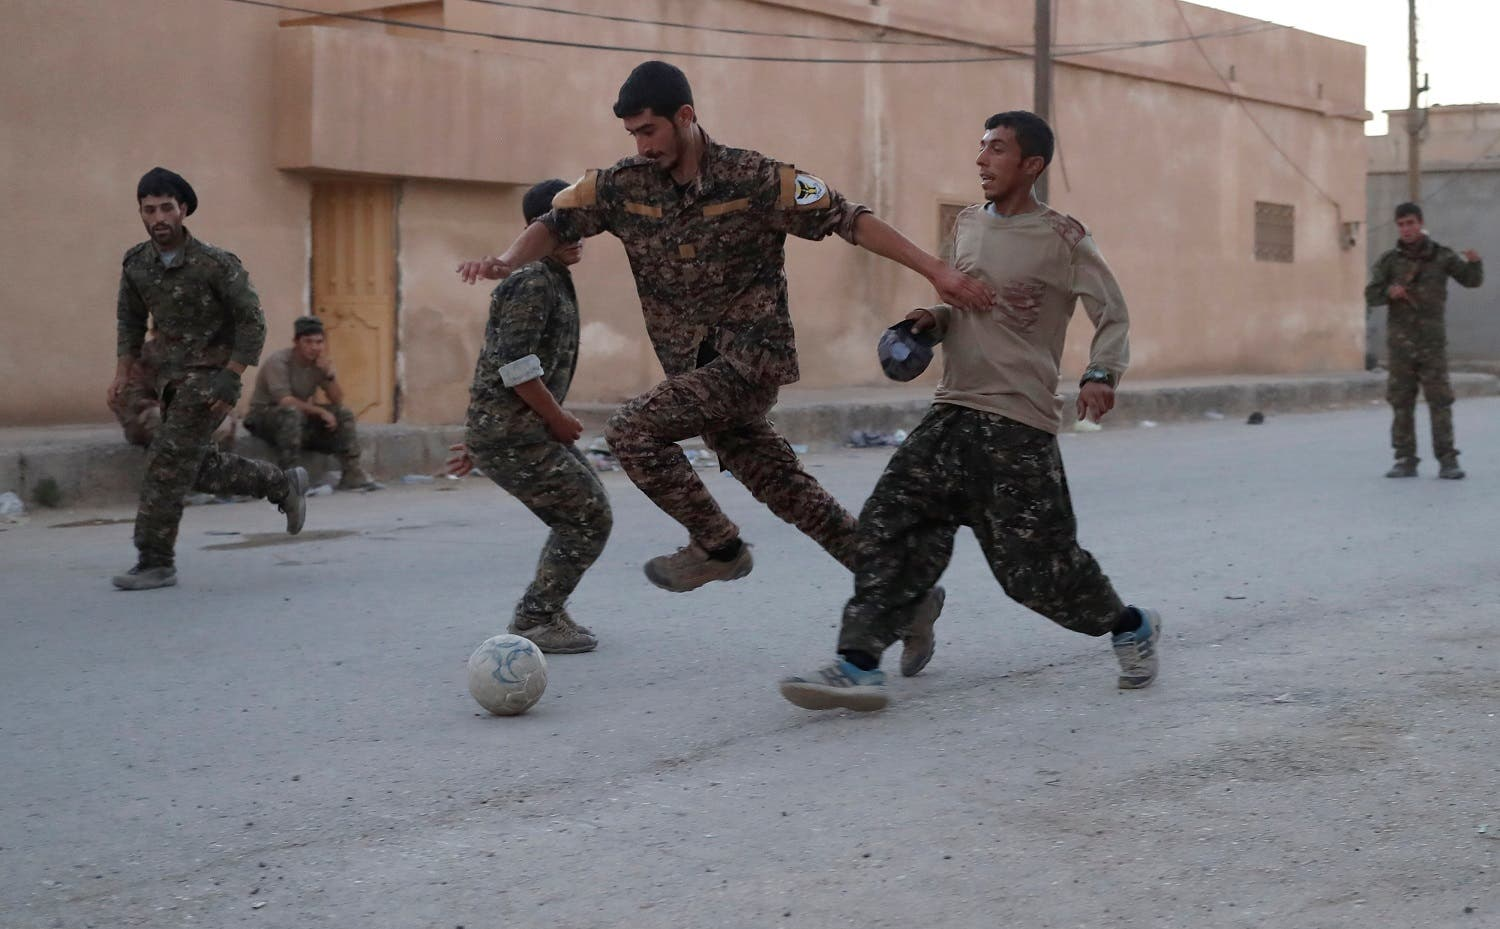 Kurdish fighters from the People's Protection Units (YPG) play football on a street in Raqqa, Syria June 26, 2017. (Reuters)